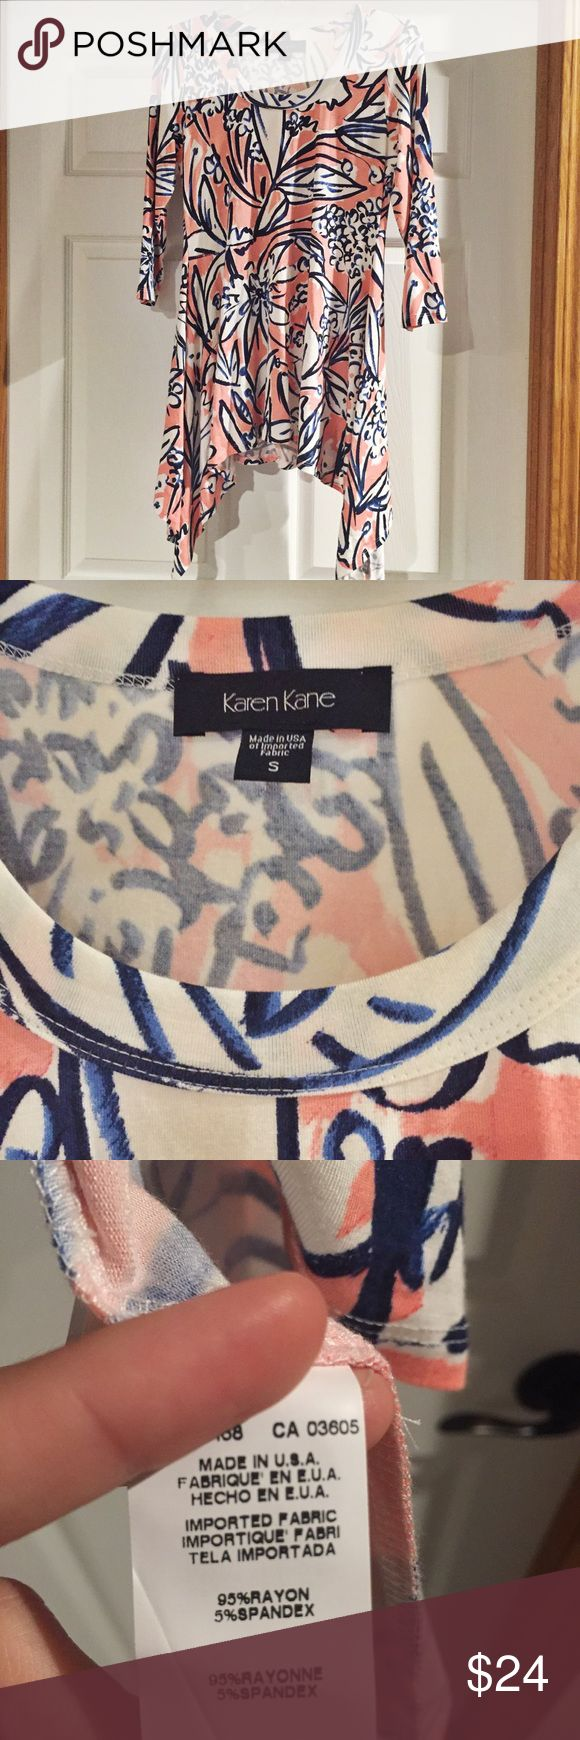 Karen Kane handkerchief swing comfy top Karen Kane handkerchief hem top! EUC. This shirt is SOO soft and flattering. It has 3/4 length sleeves. Cute with leggings or jeans. ( last photo is the same top, different pattern for fit ) Karen Kane Tops